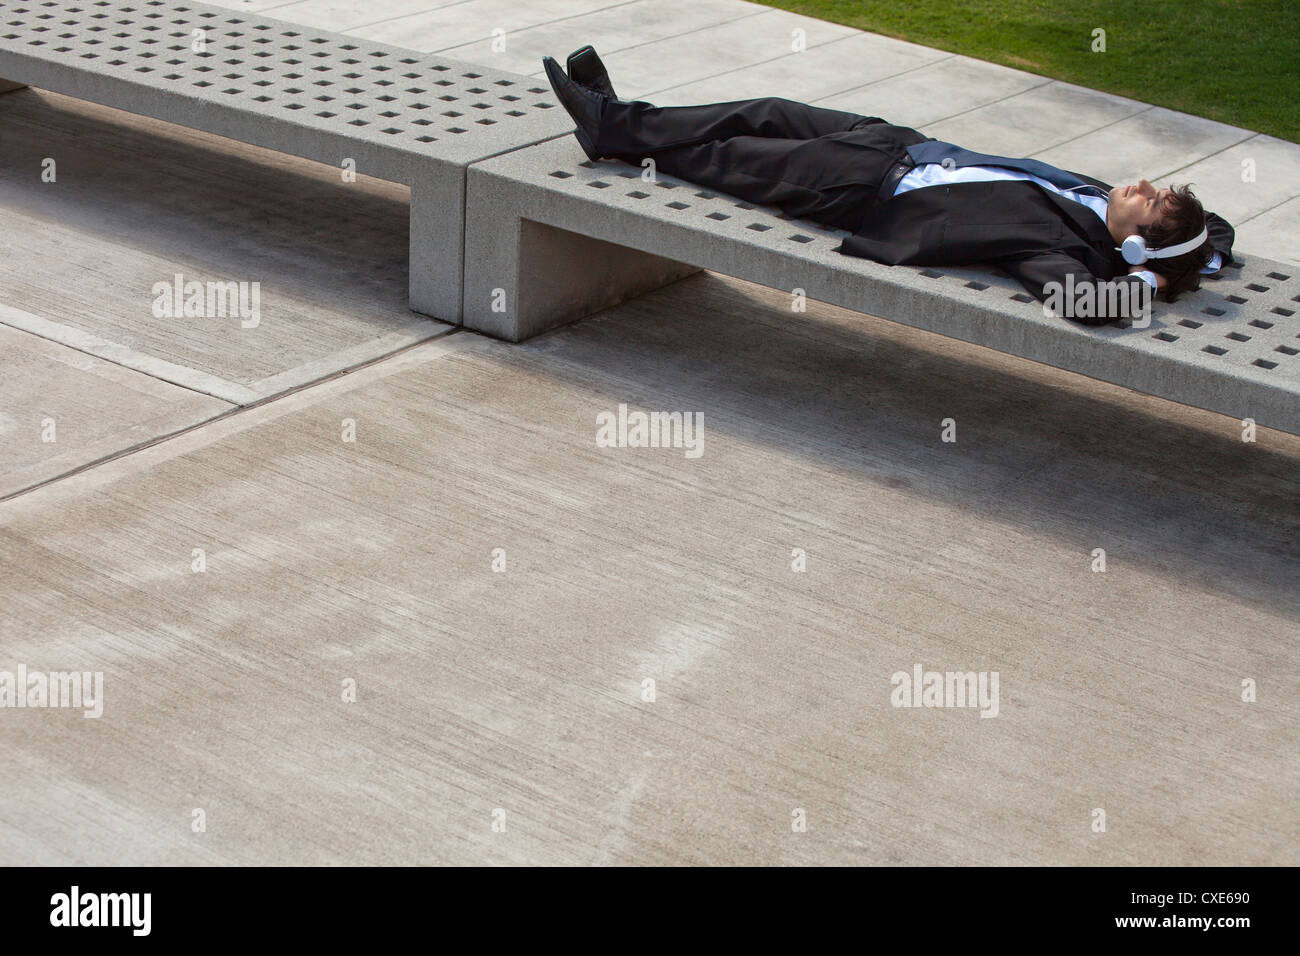 Young businessman napping on park bench with headphones on - Stock Image